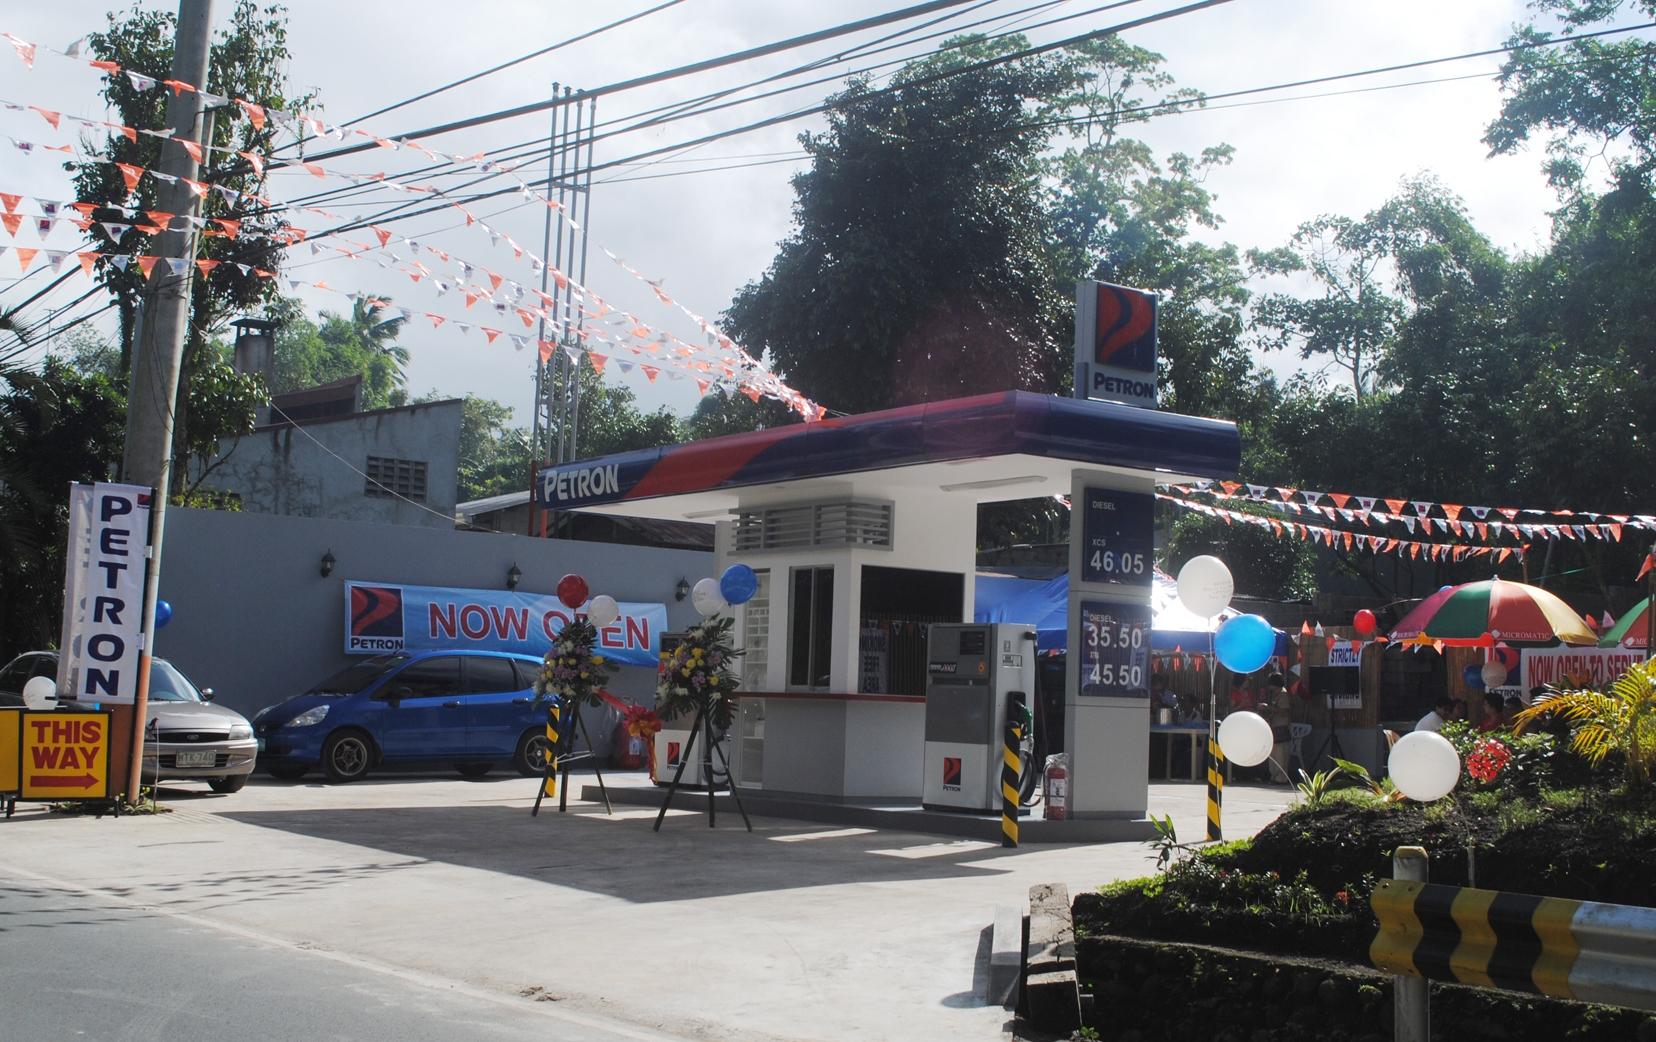 petron gasoline station in the philippines A fire hit the petron gasoline station in shaw boulevard, mandaluyong  manila - (3rd update) a fire hit a petron gasoline station on shaw.